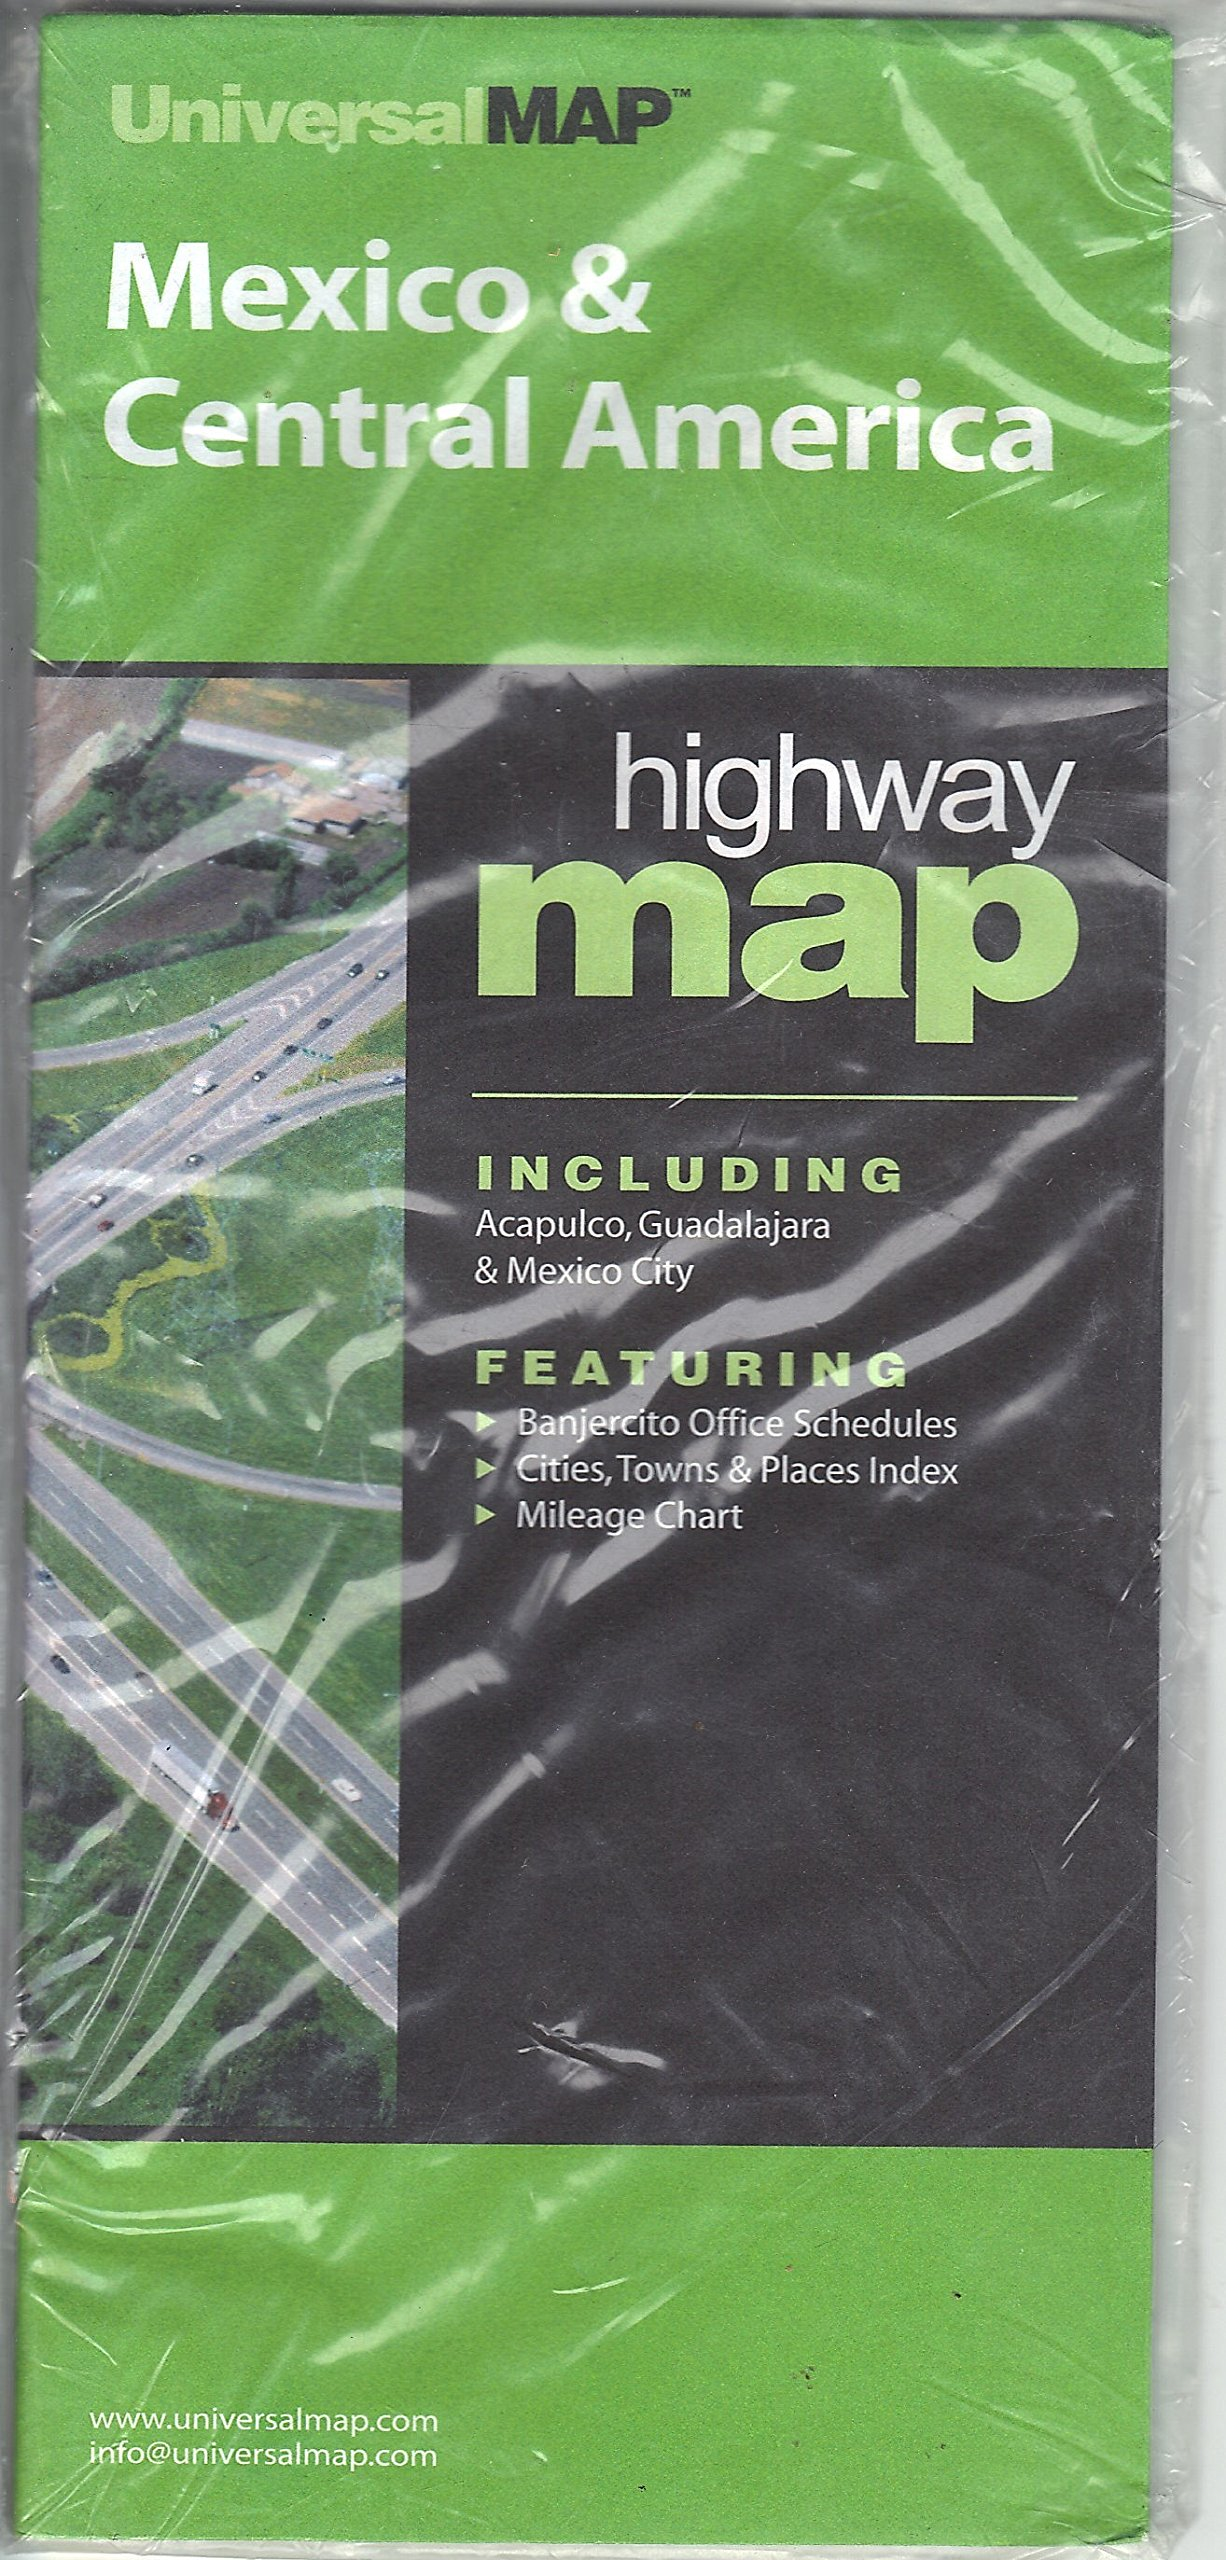 Mexico & Central America Highway Map: UniversalMAP ...